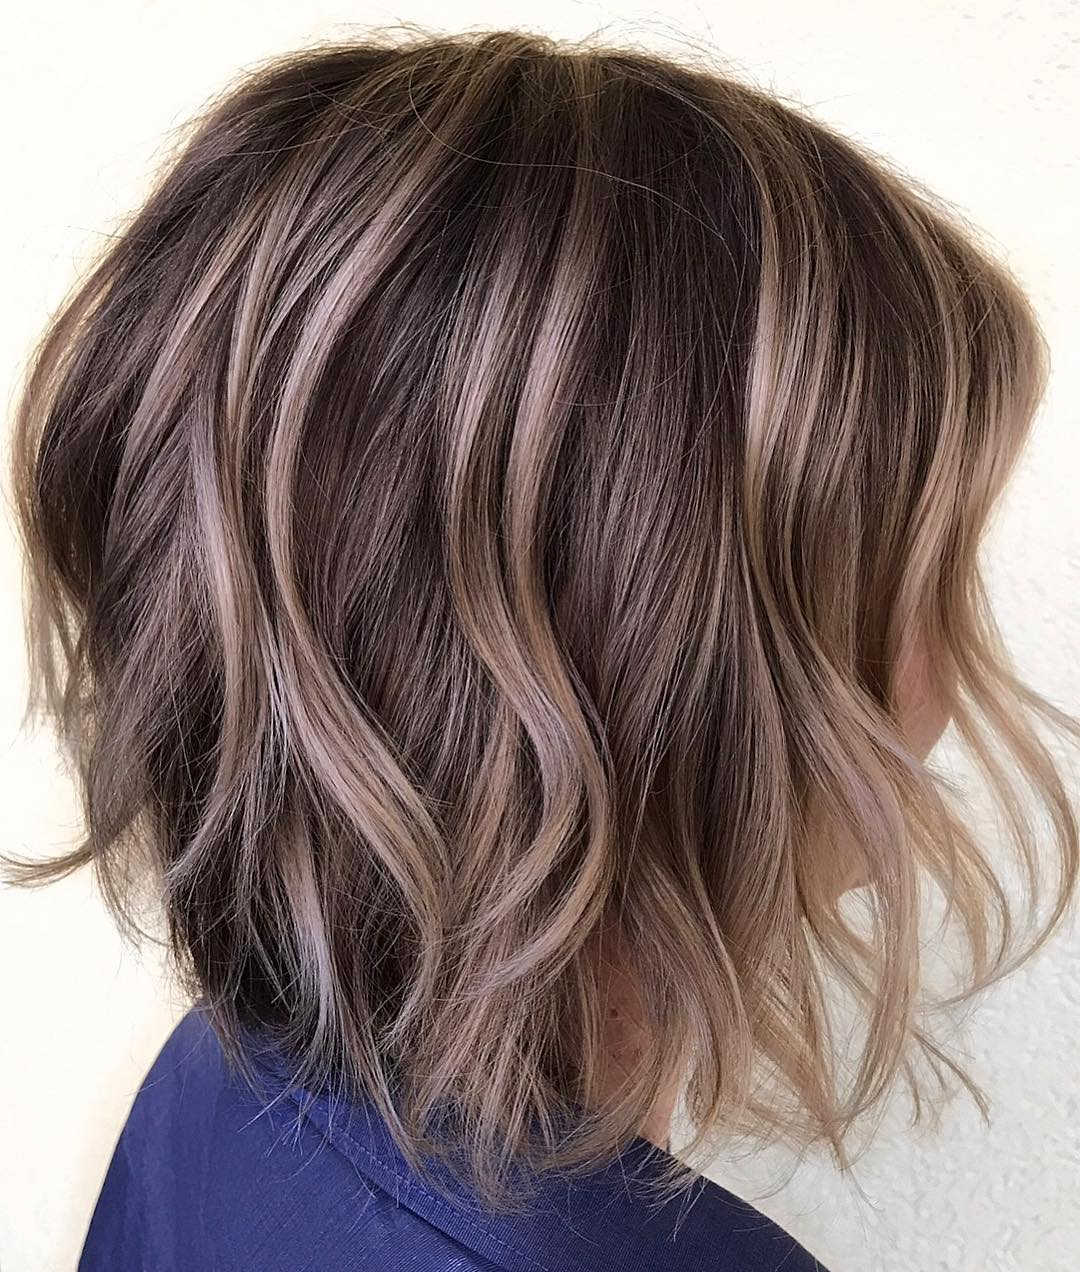 50 layered bobs you will fall in love with - hair adviser